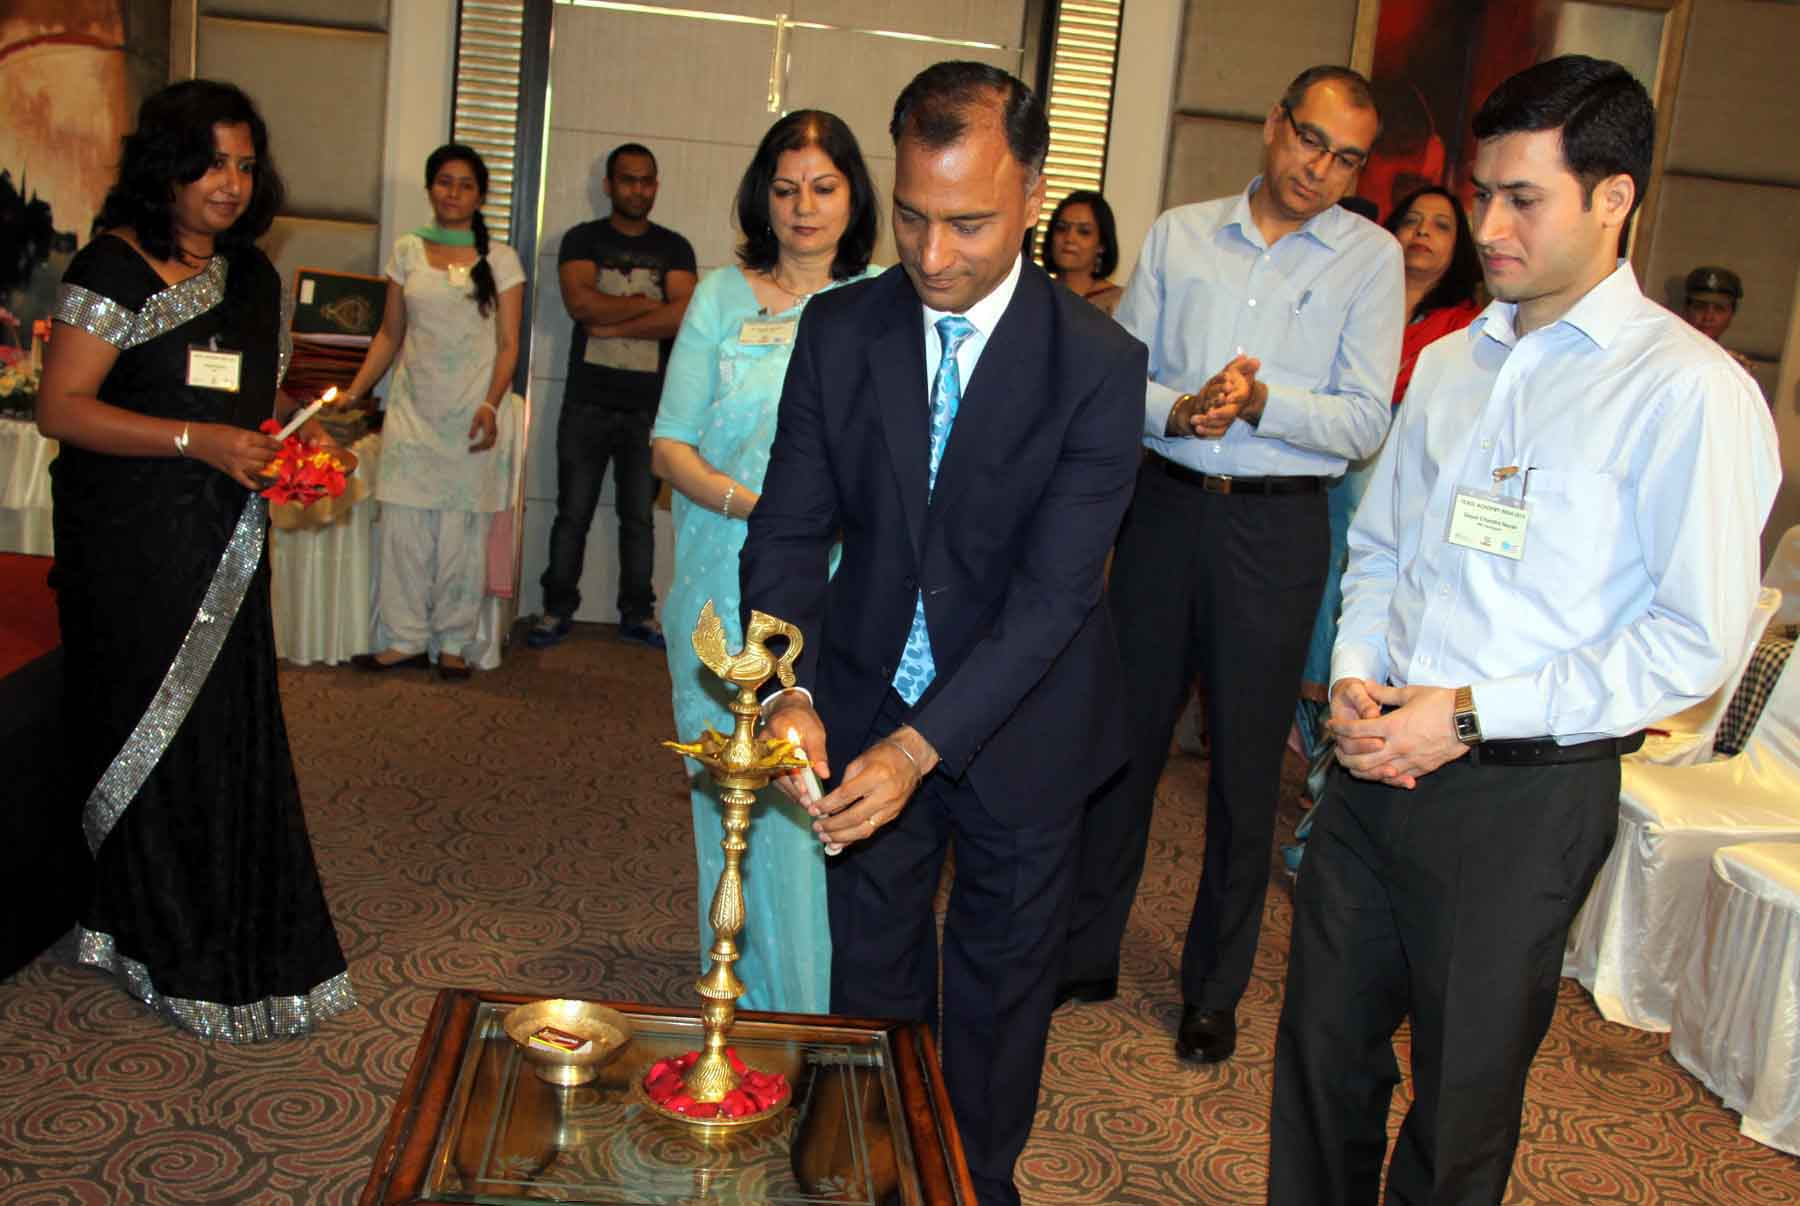 The Adviser to the Administrator, UT, Chandigarh, Mr. Vijay Dev lighting the traditional lamp at the inauguration of �TESOL ACADEMY INDIA-2015� Changing Classrooms, Supporting Teachers at Hotel Park Plaza, Sector-17, Chandigarh on Friday, April 24, 2015.